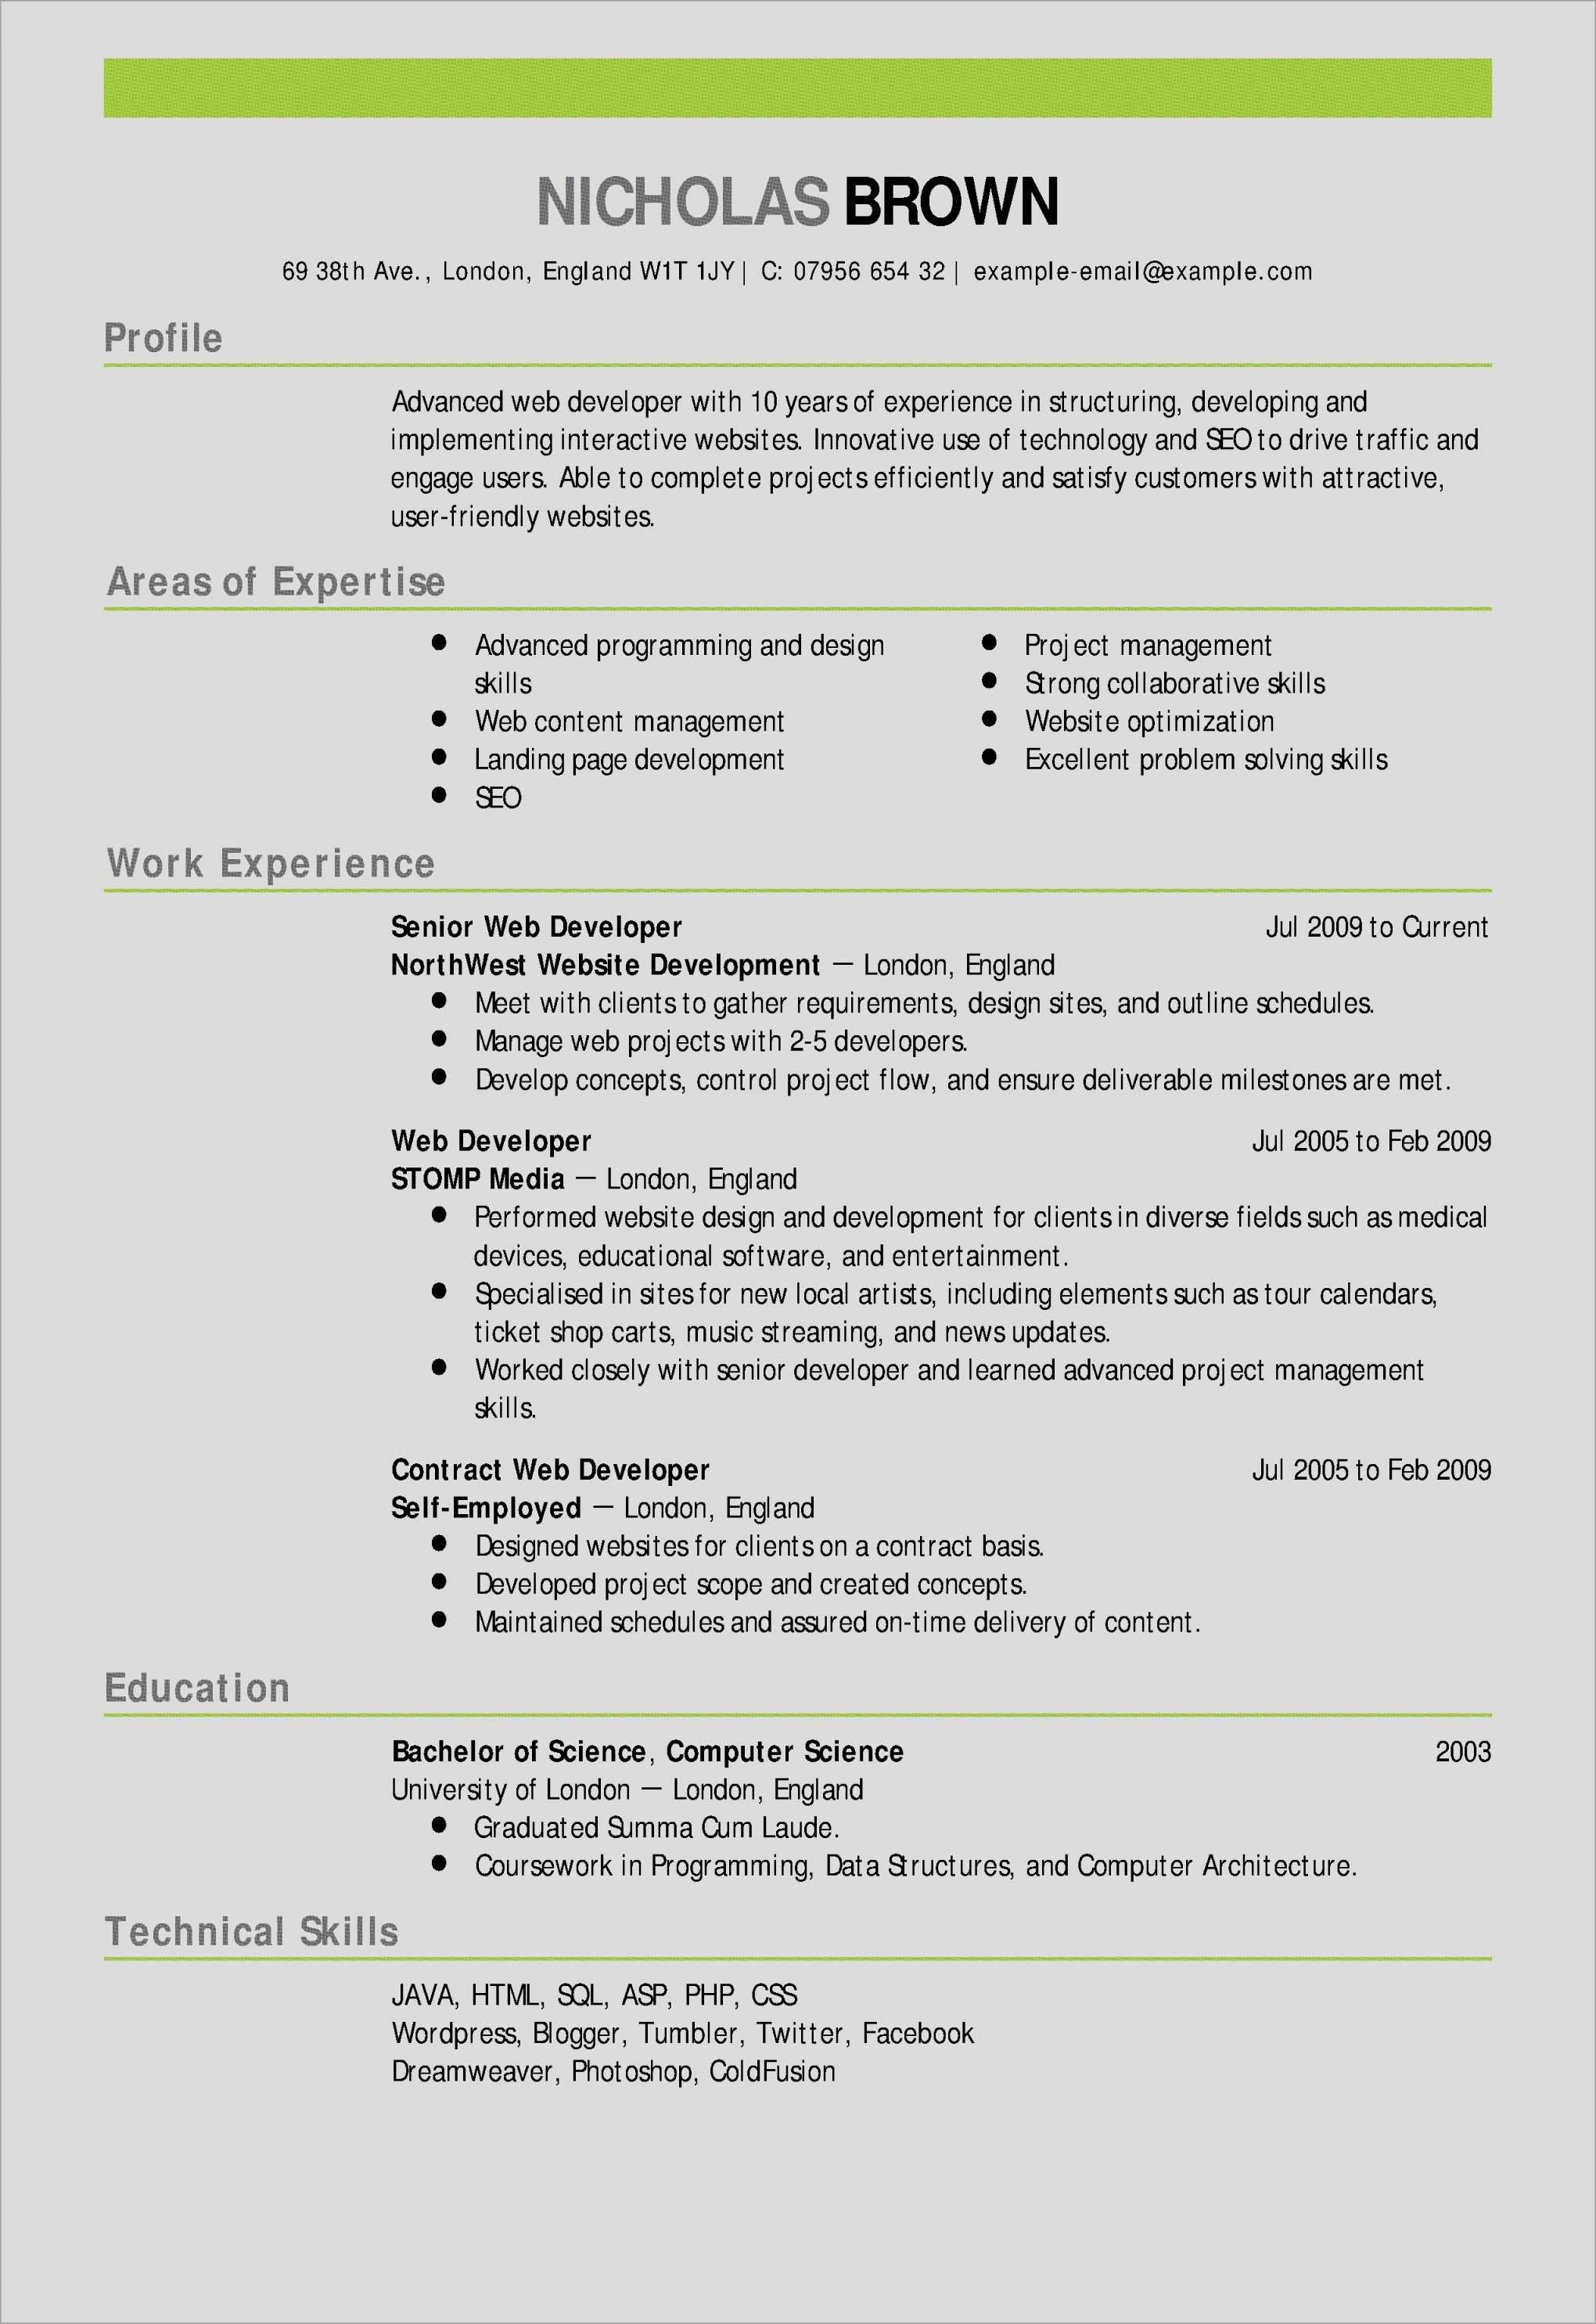 Free Resume Templates for Word Fresh Resume Template Libreoffice Resume Word New Awesome Examples Resumes